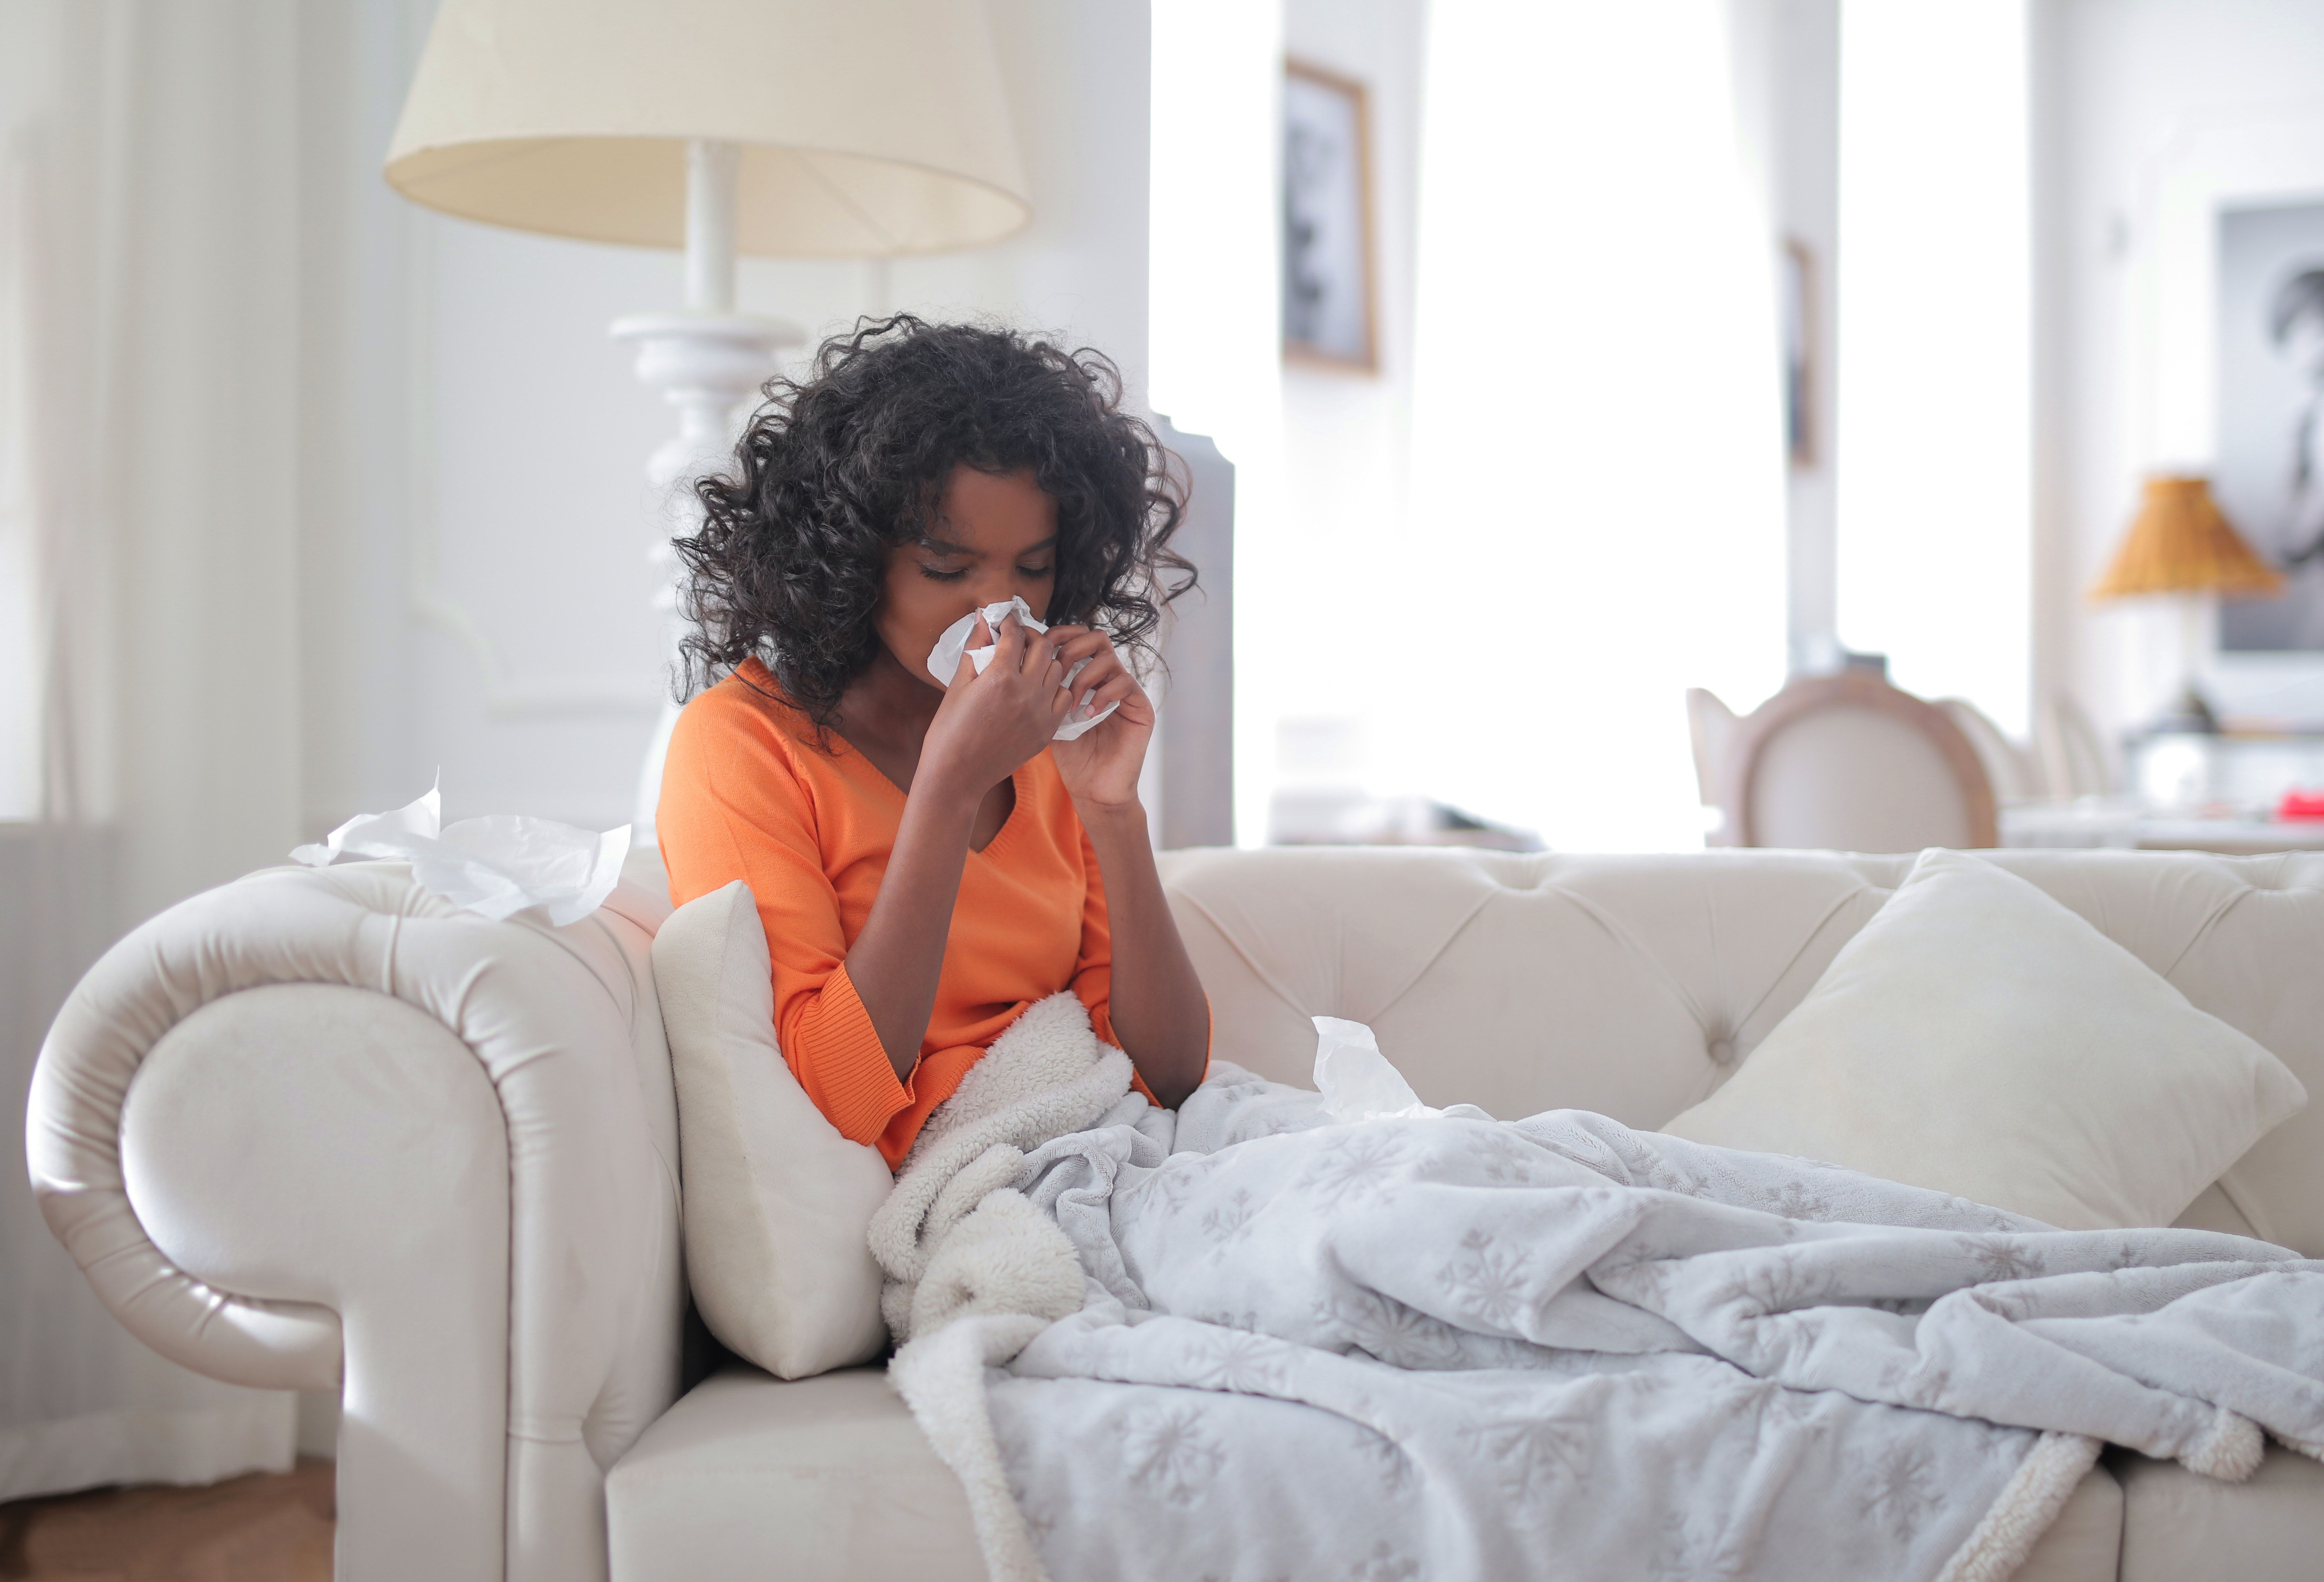 Woman on the couch with a congested nose